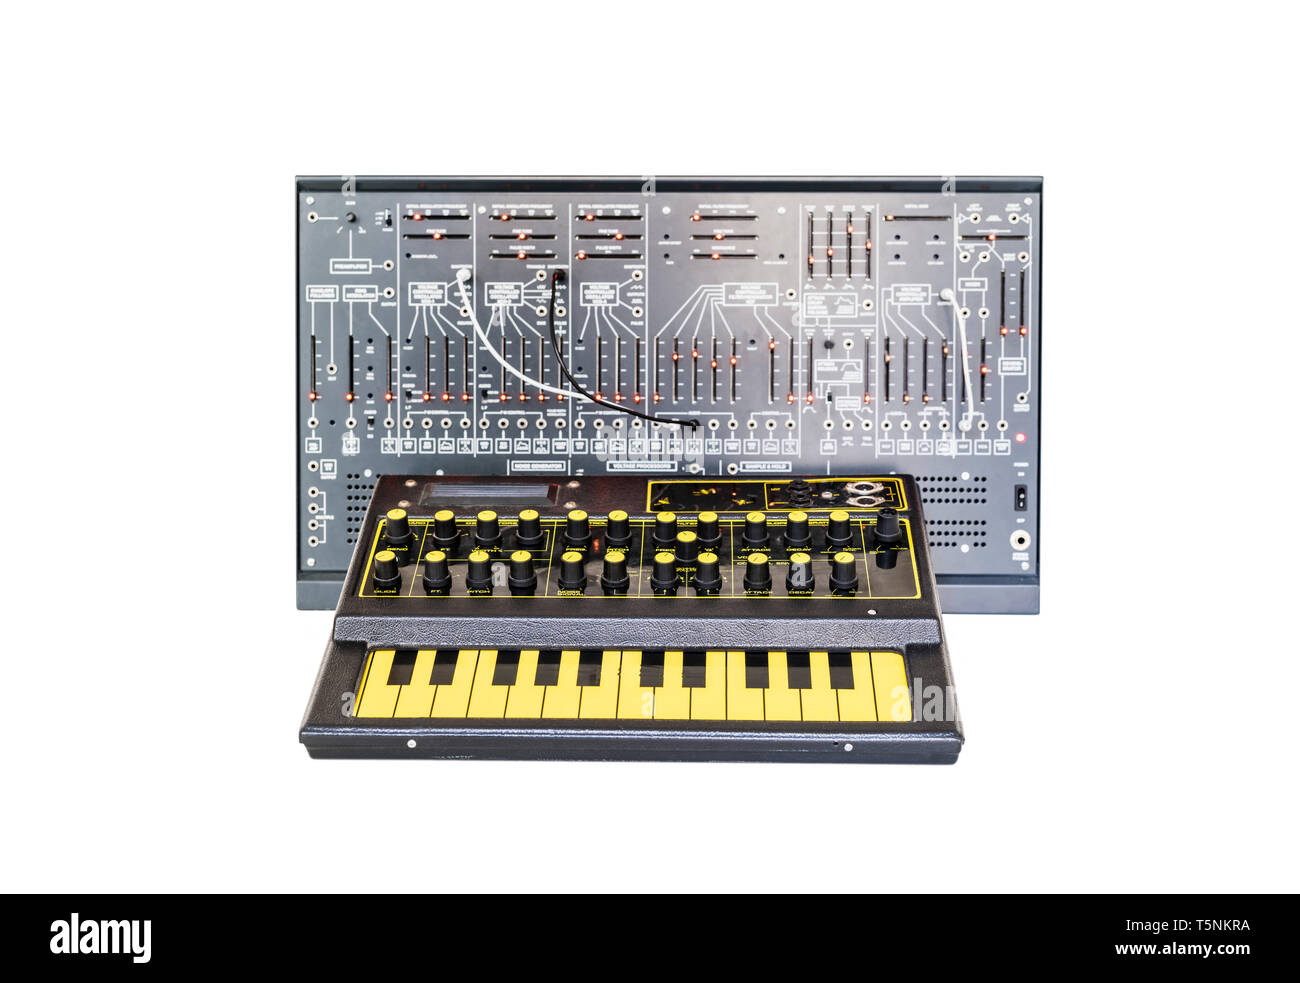 Two Synthesizers. EDP Wasp from 1978 and a modern clone of the Arp 2600 from 1971 with patch cables, in an analog music recording studio. - Stock Image